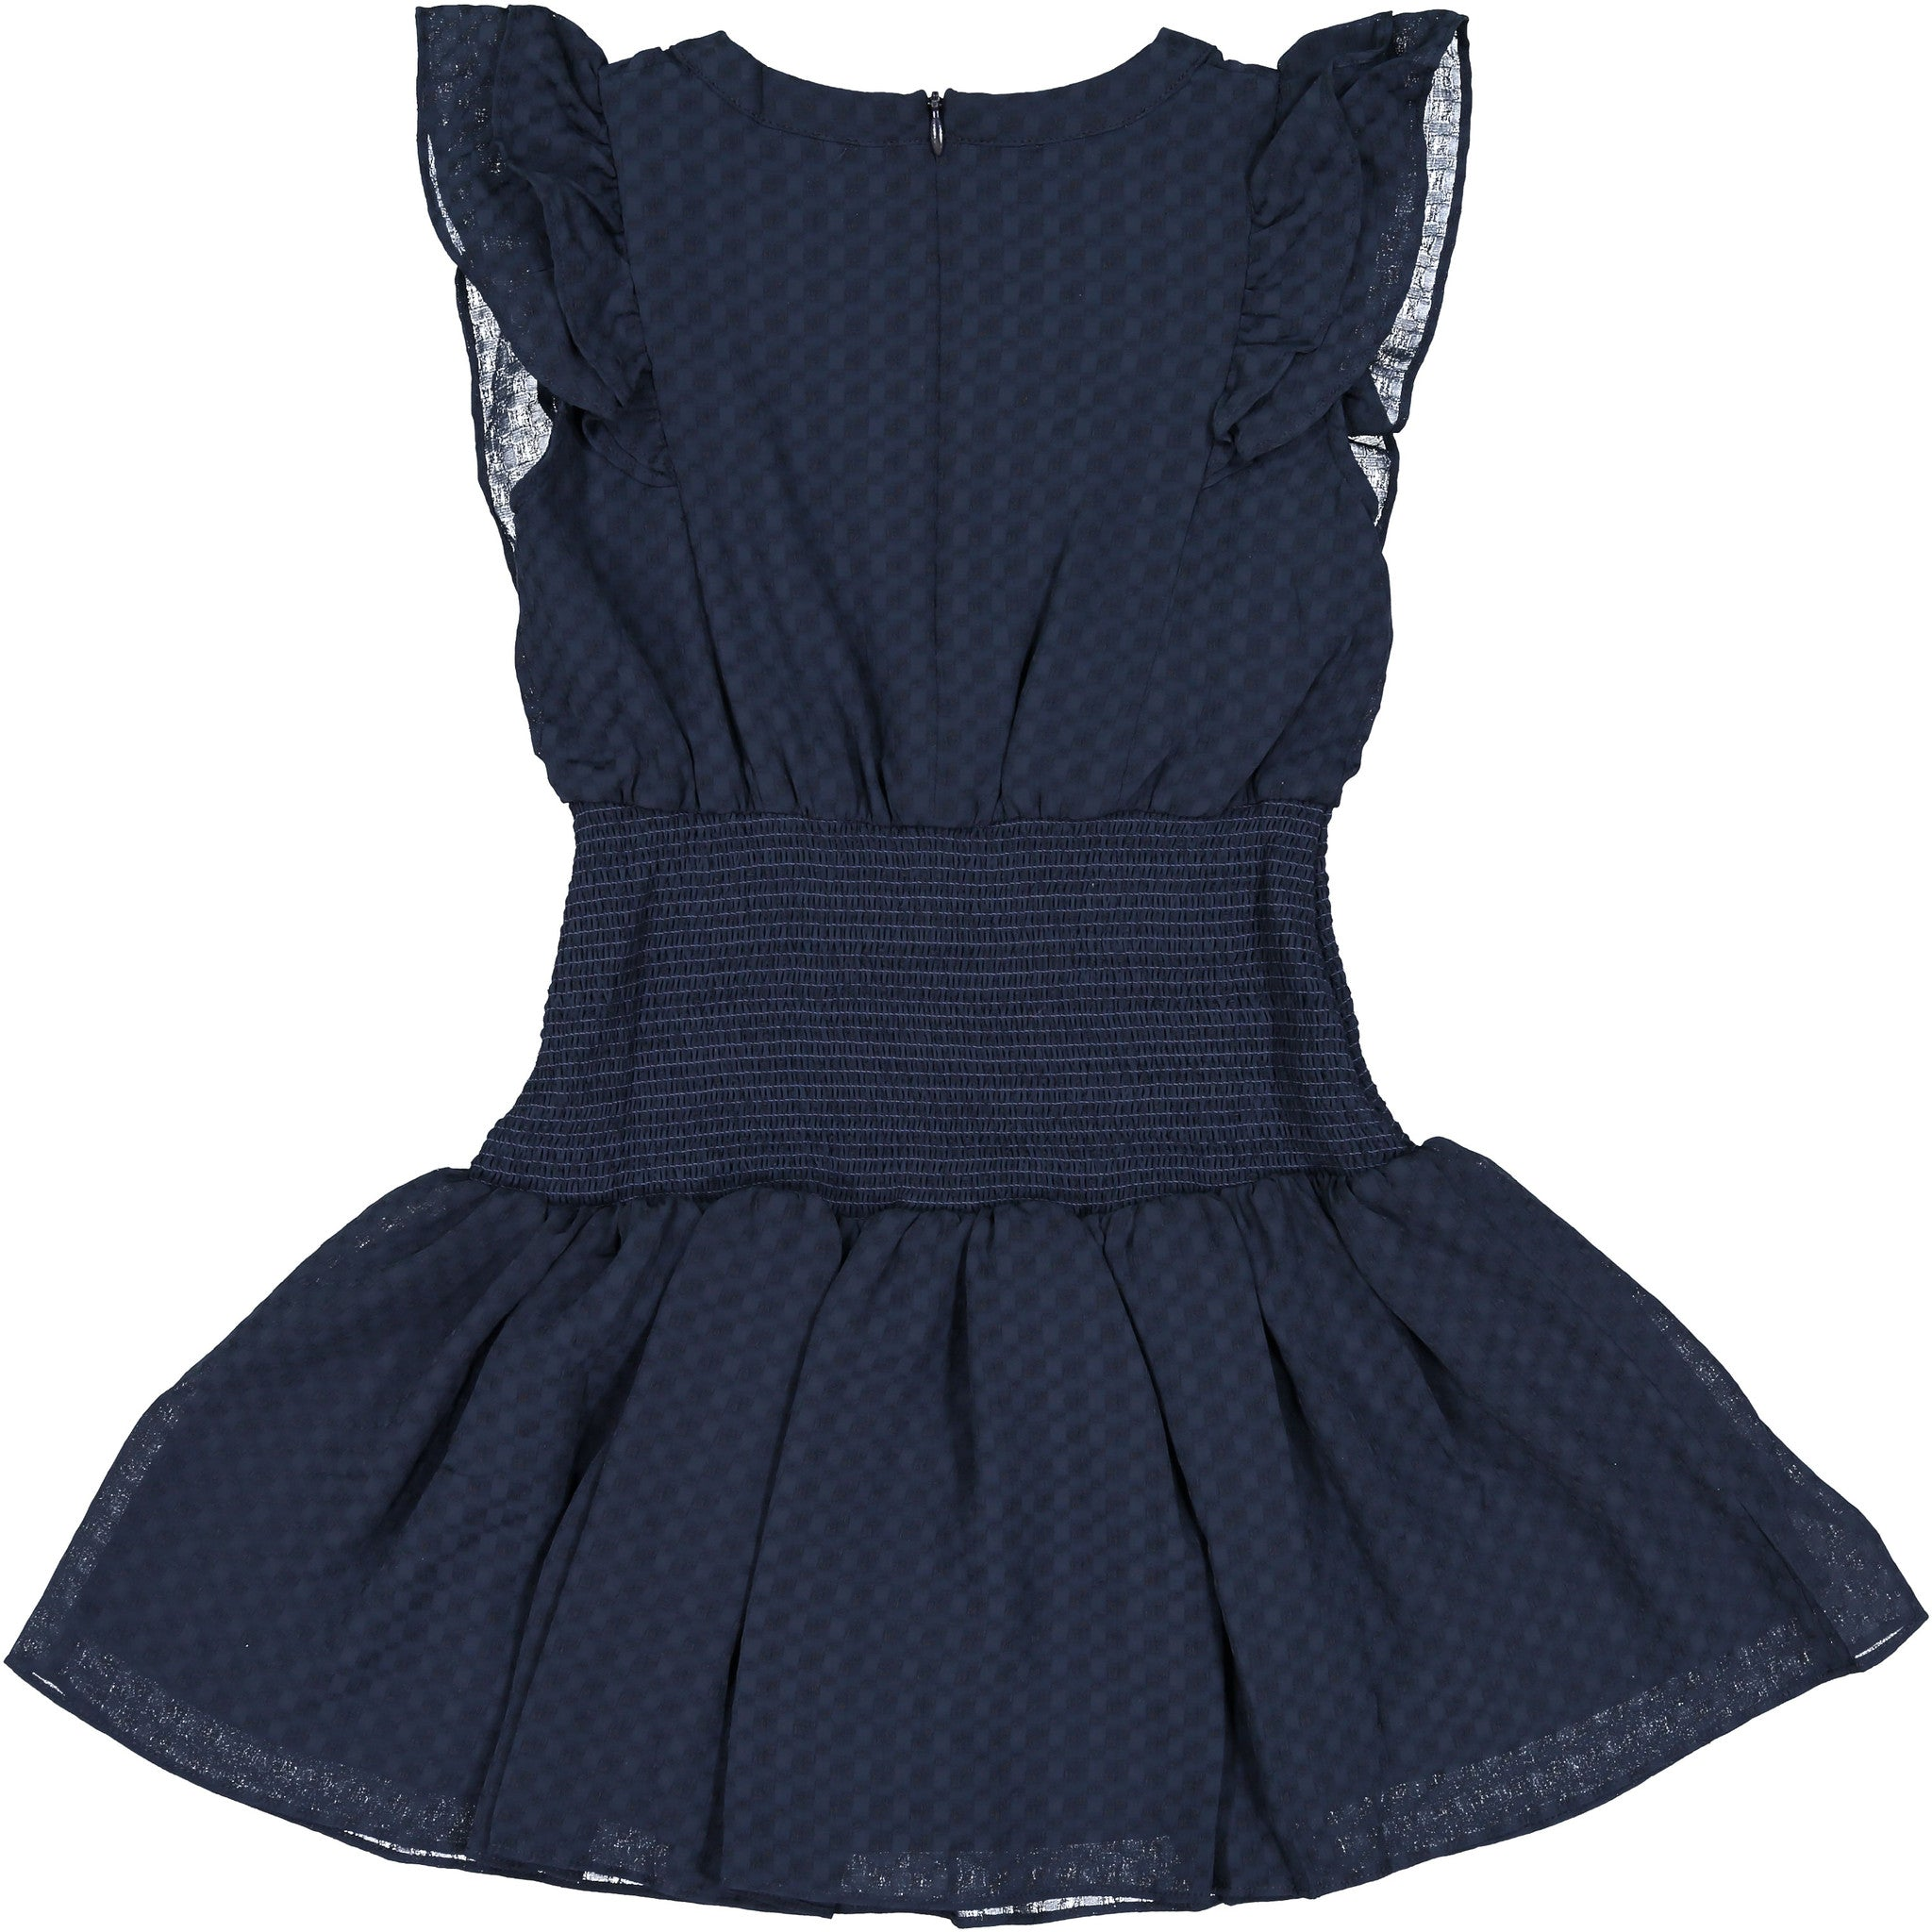 Remix Navy Enigma Dress - Ladida